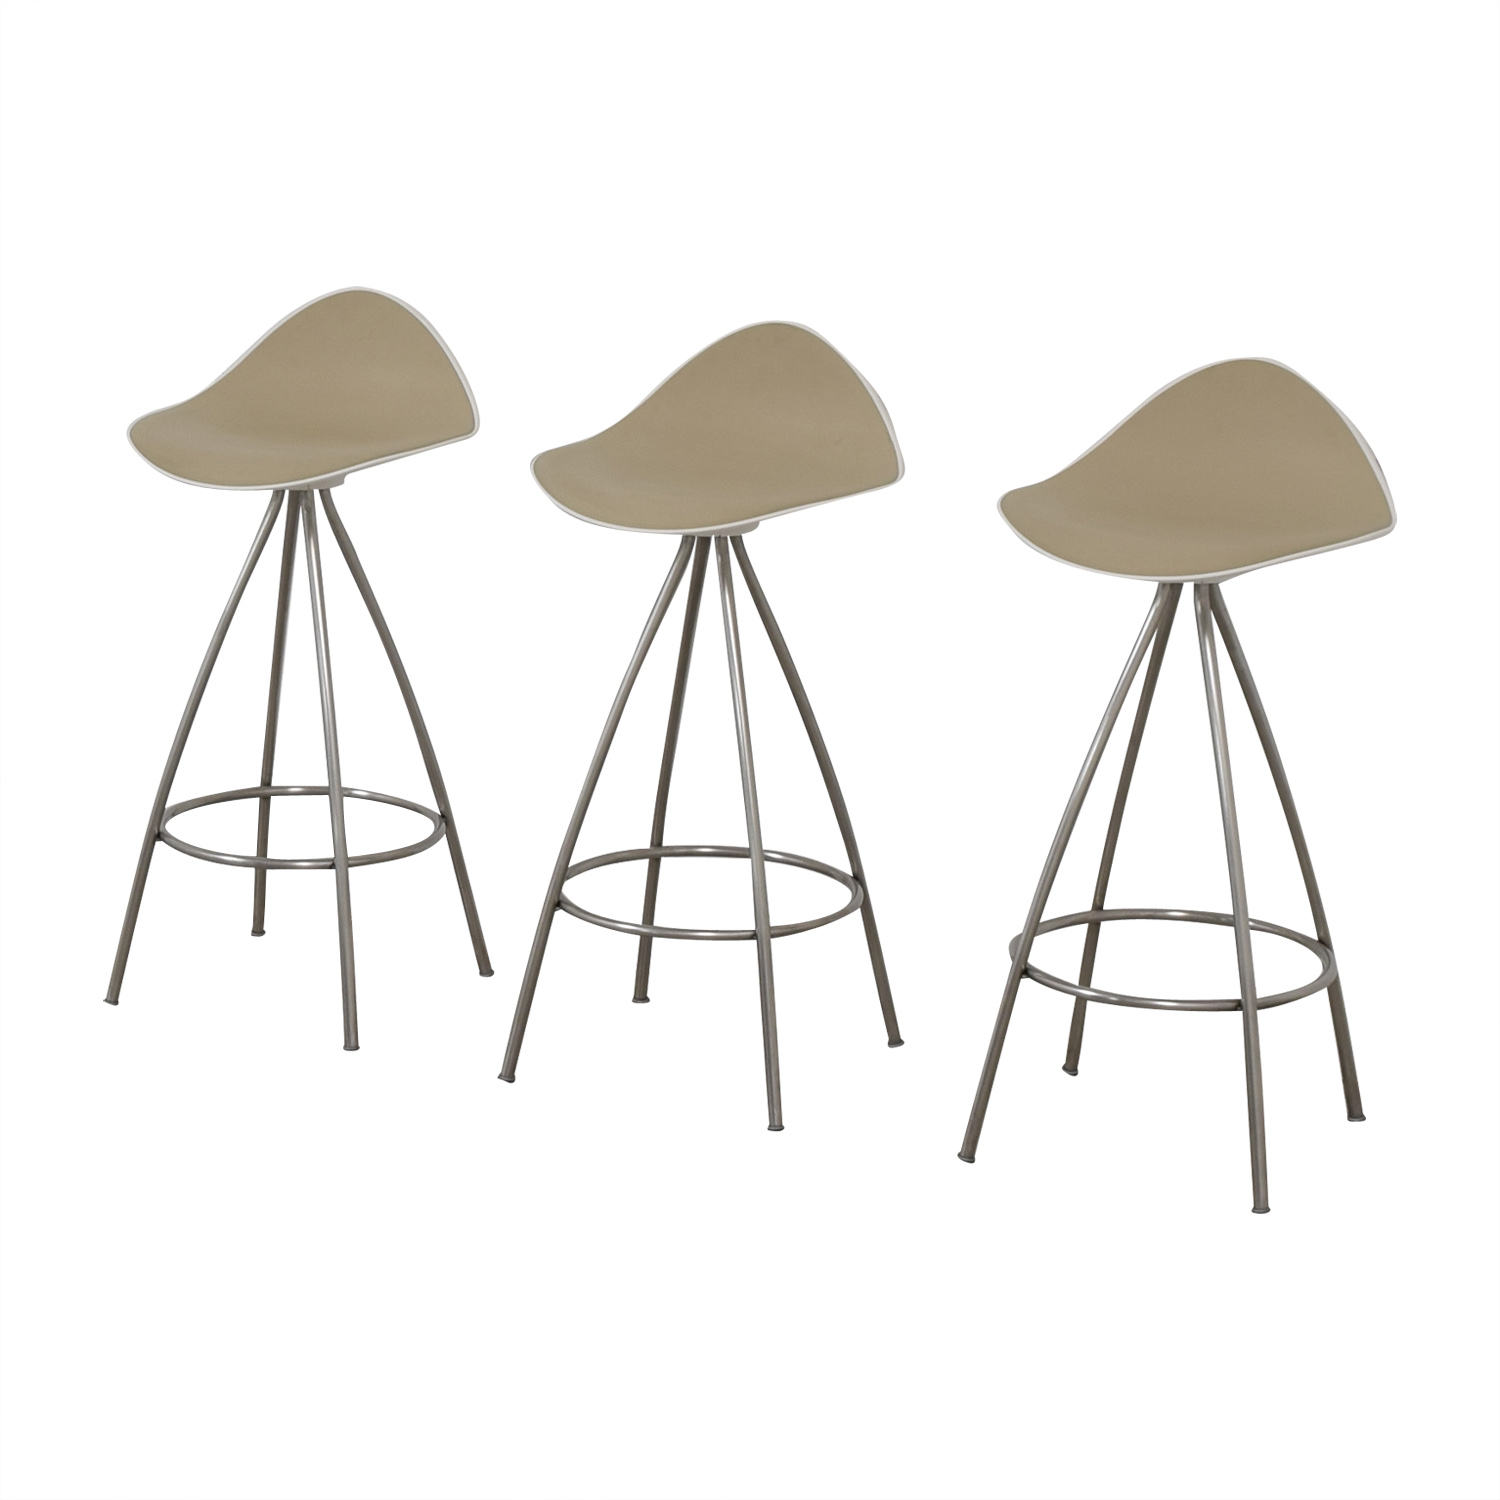 buy Design Within Reach Barstools Design Within Reach Chairs